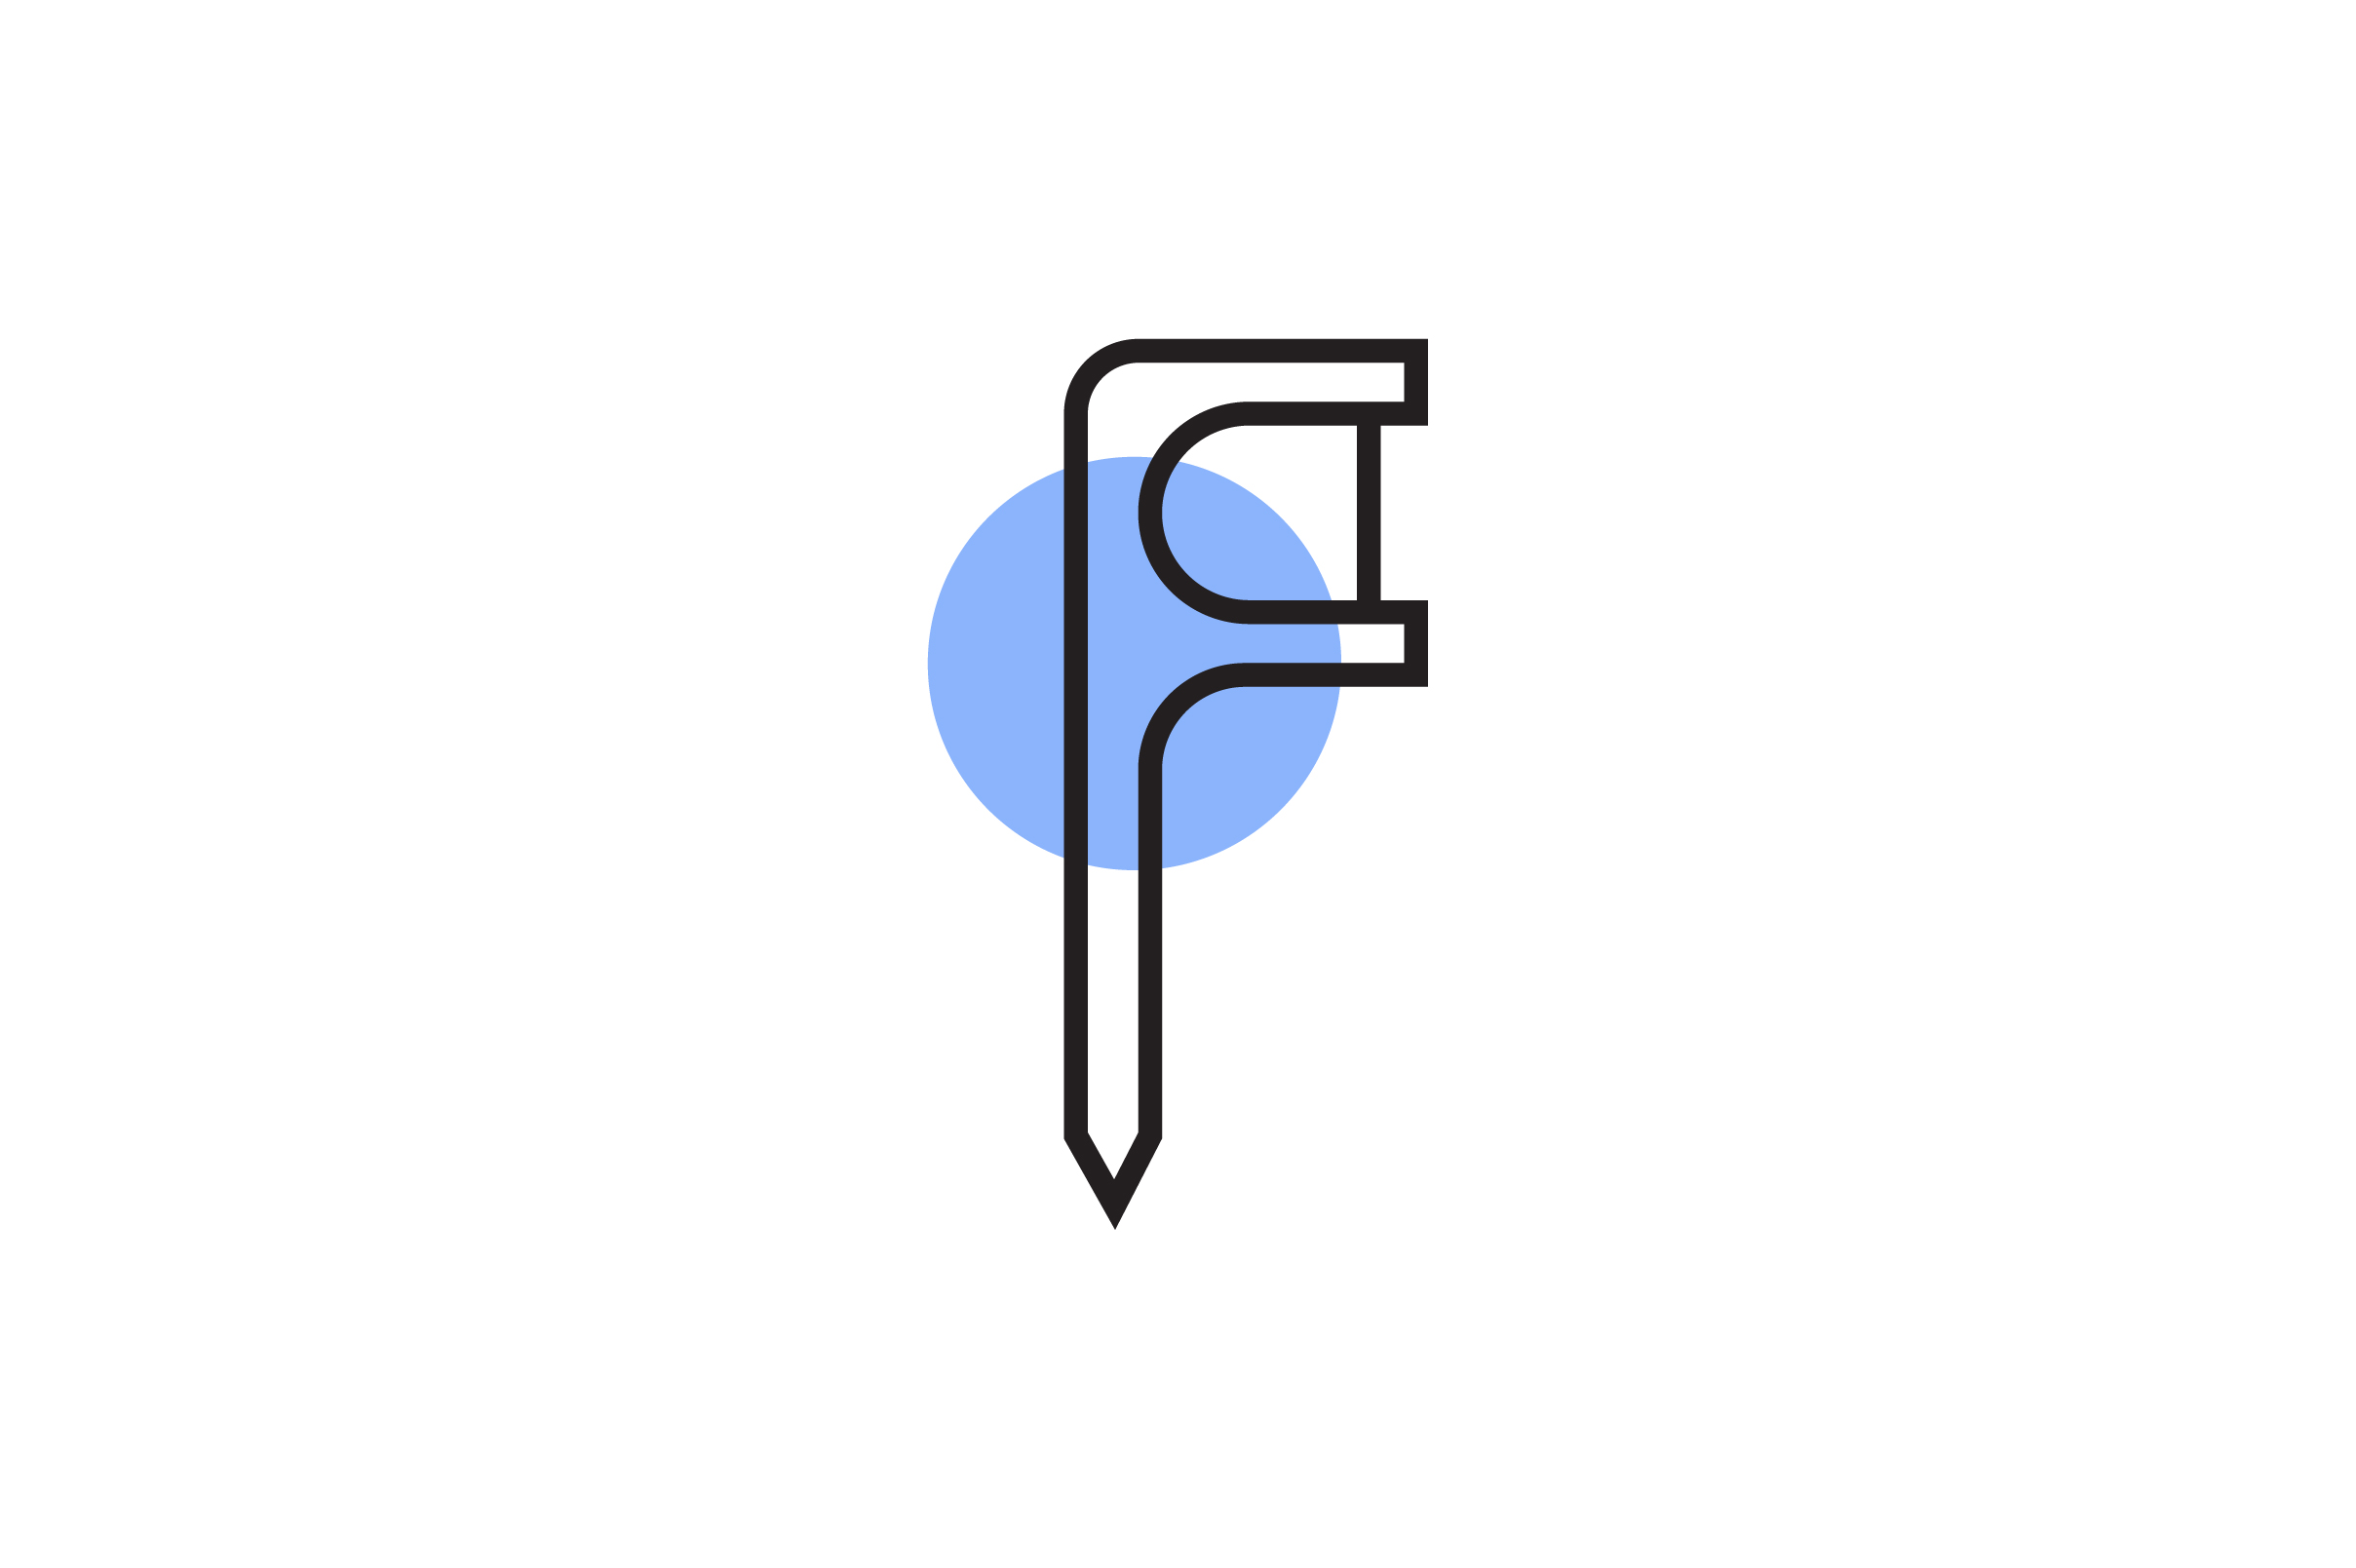 Download Free Dental Floss Icon Graphic By Flatdesigntheory Creative Fabrica for Cricut Explore, Silhouette and other cutting machines.